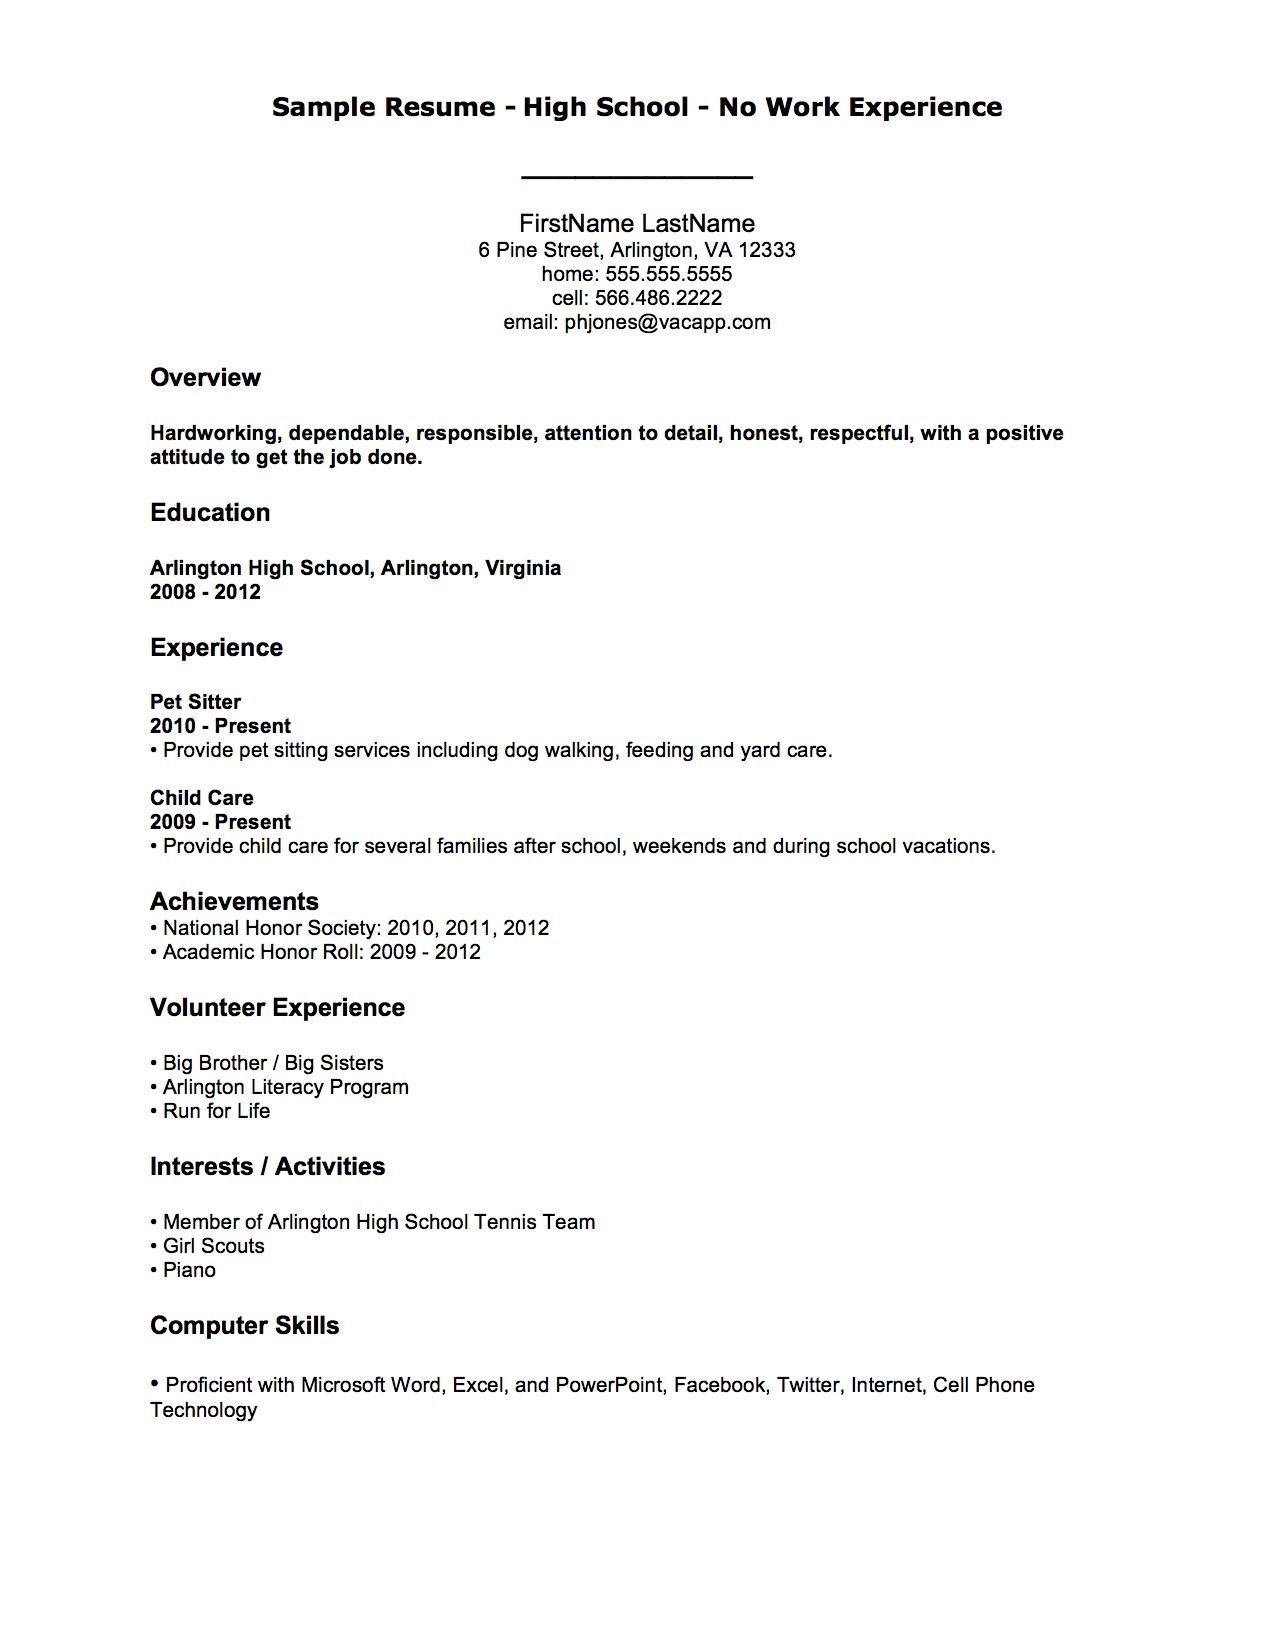 no experience resumes | Help! I Need a Resume, but I Have No ...